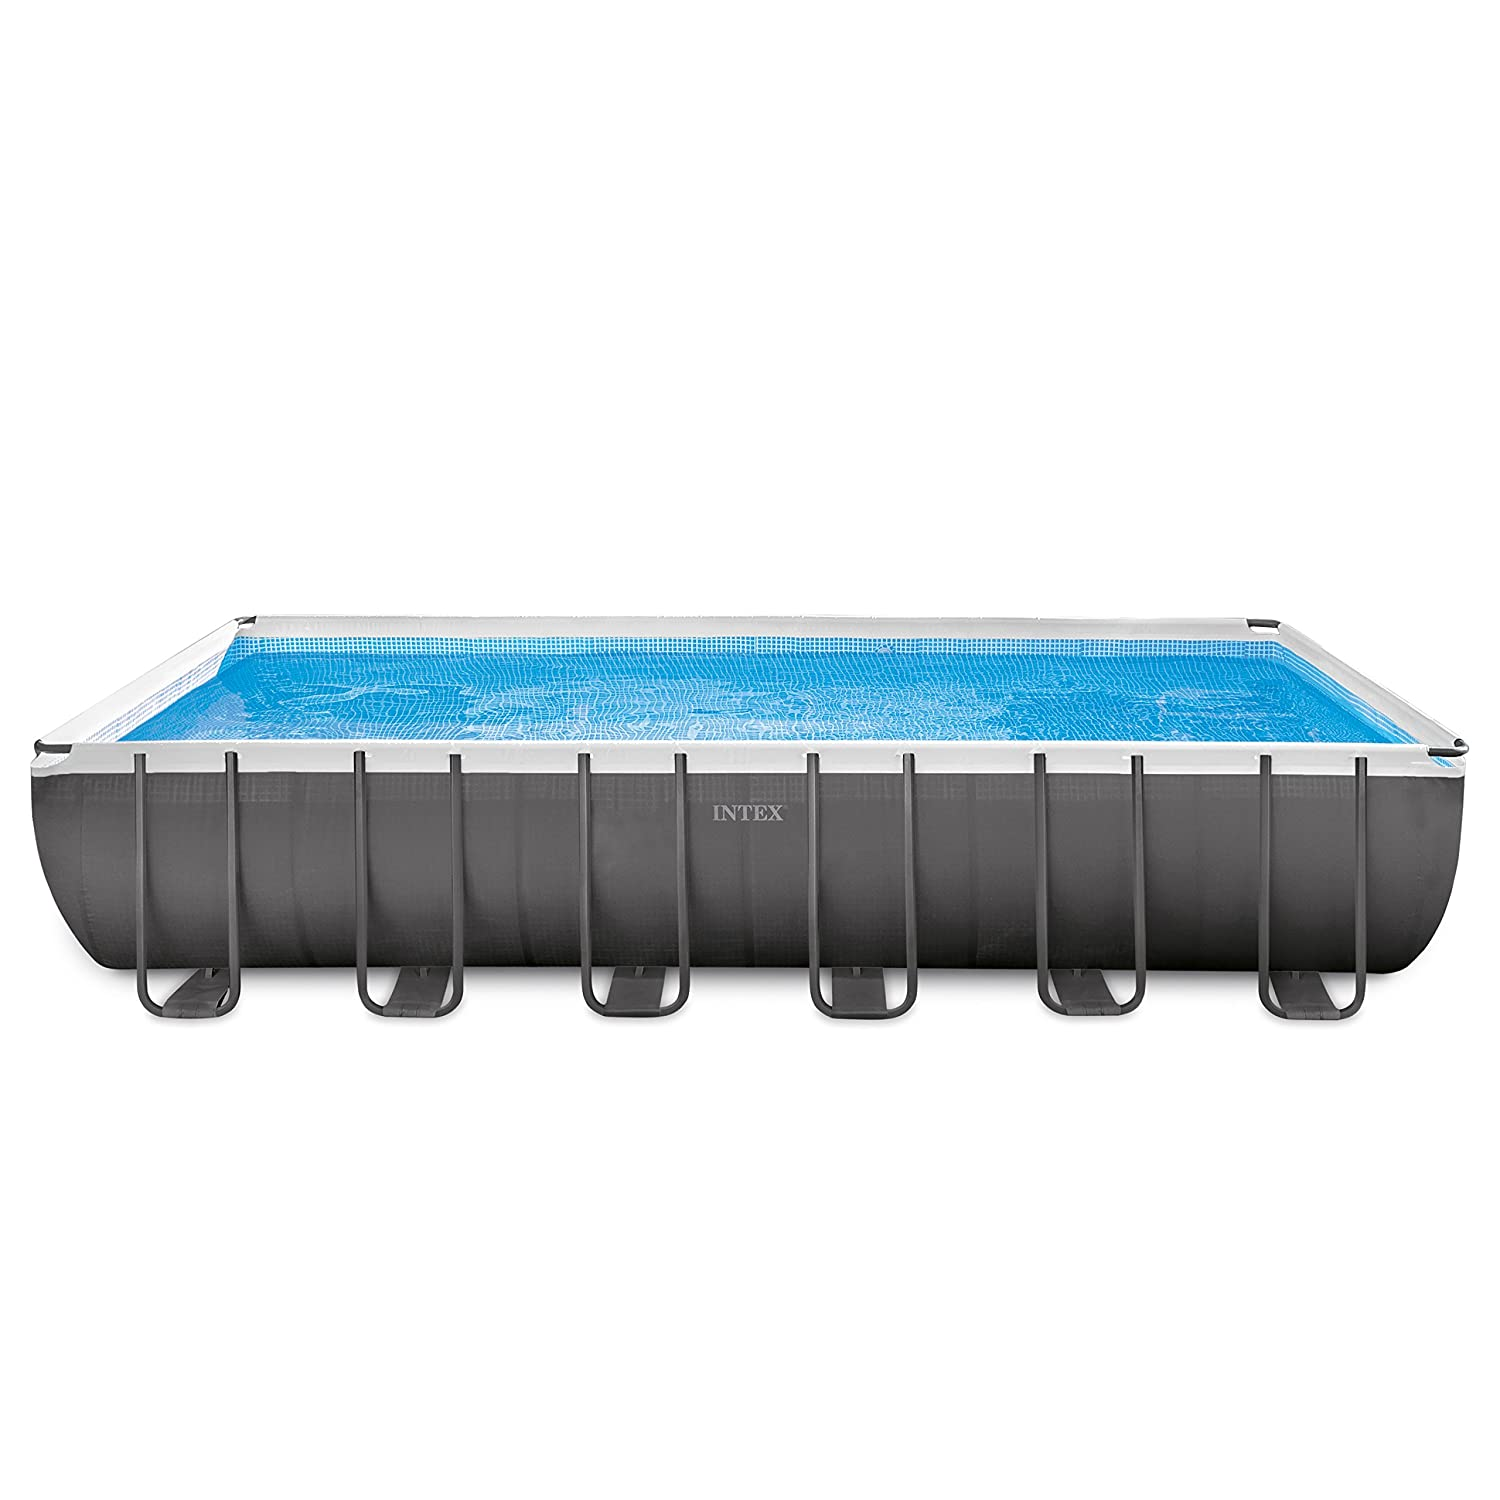 Top 10 Best Above Ground Pools Reviews in 2020 7